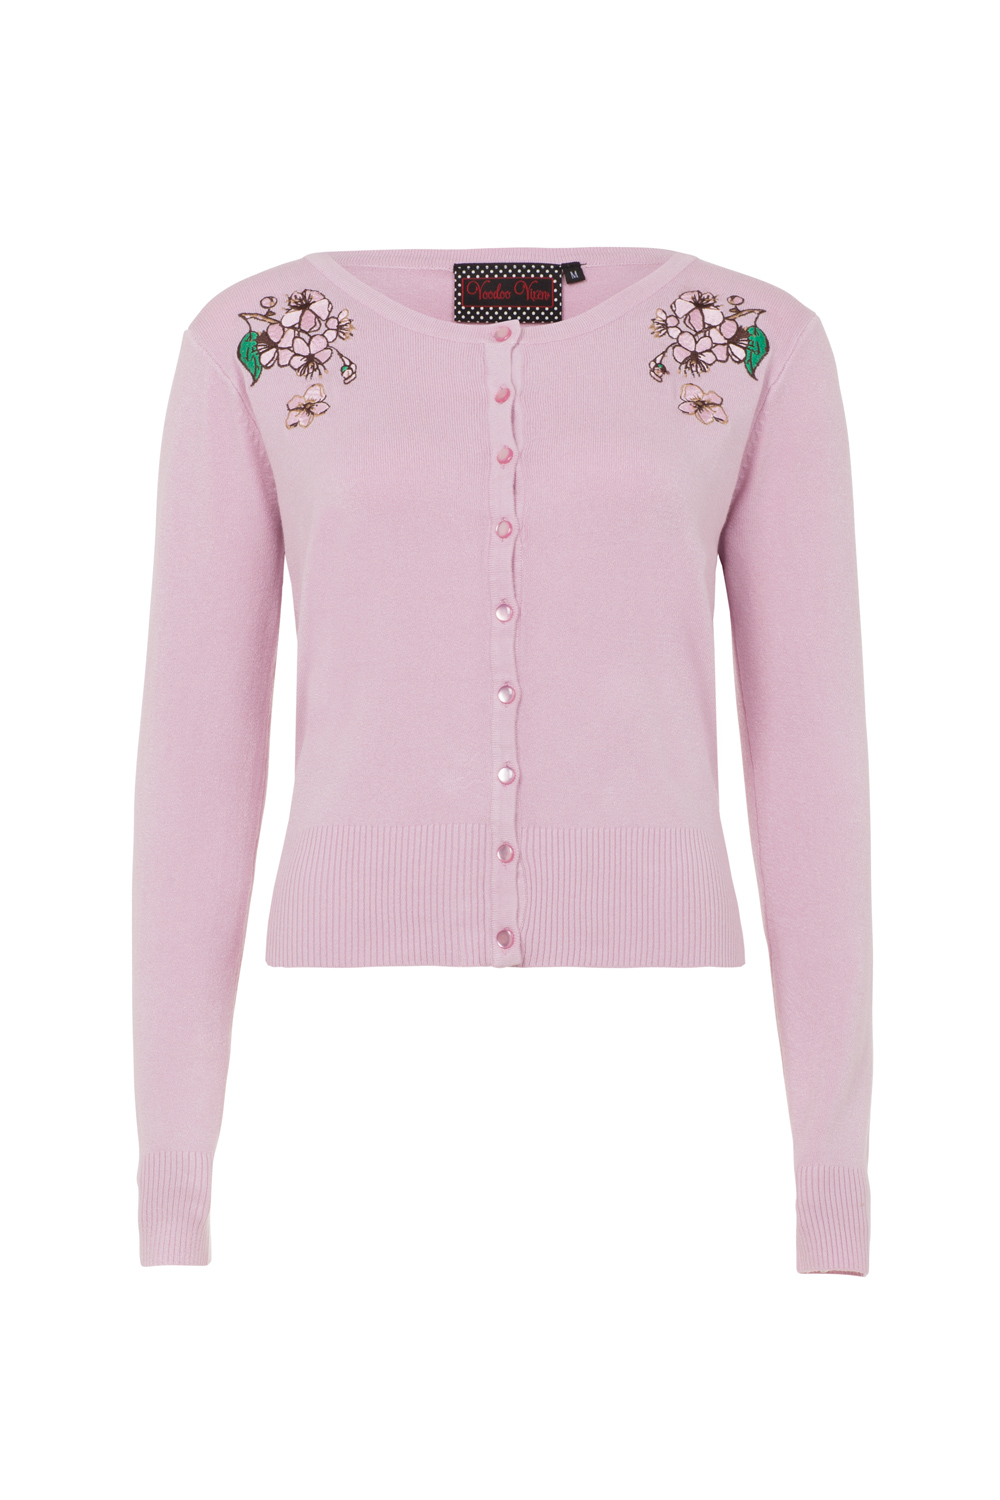 Rosamund Pink Embroidered Plus Size Cardigan